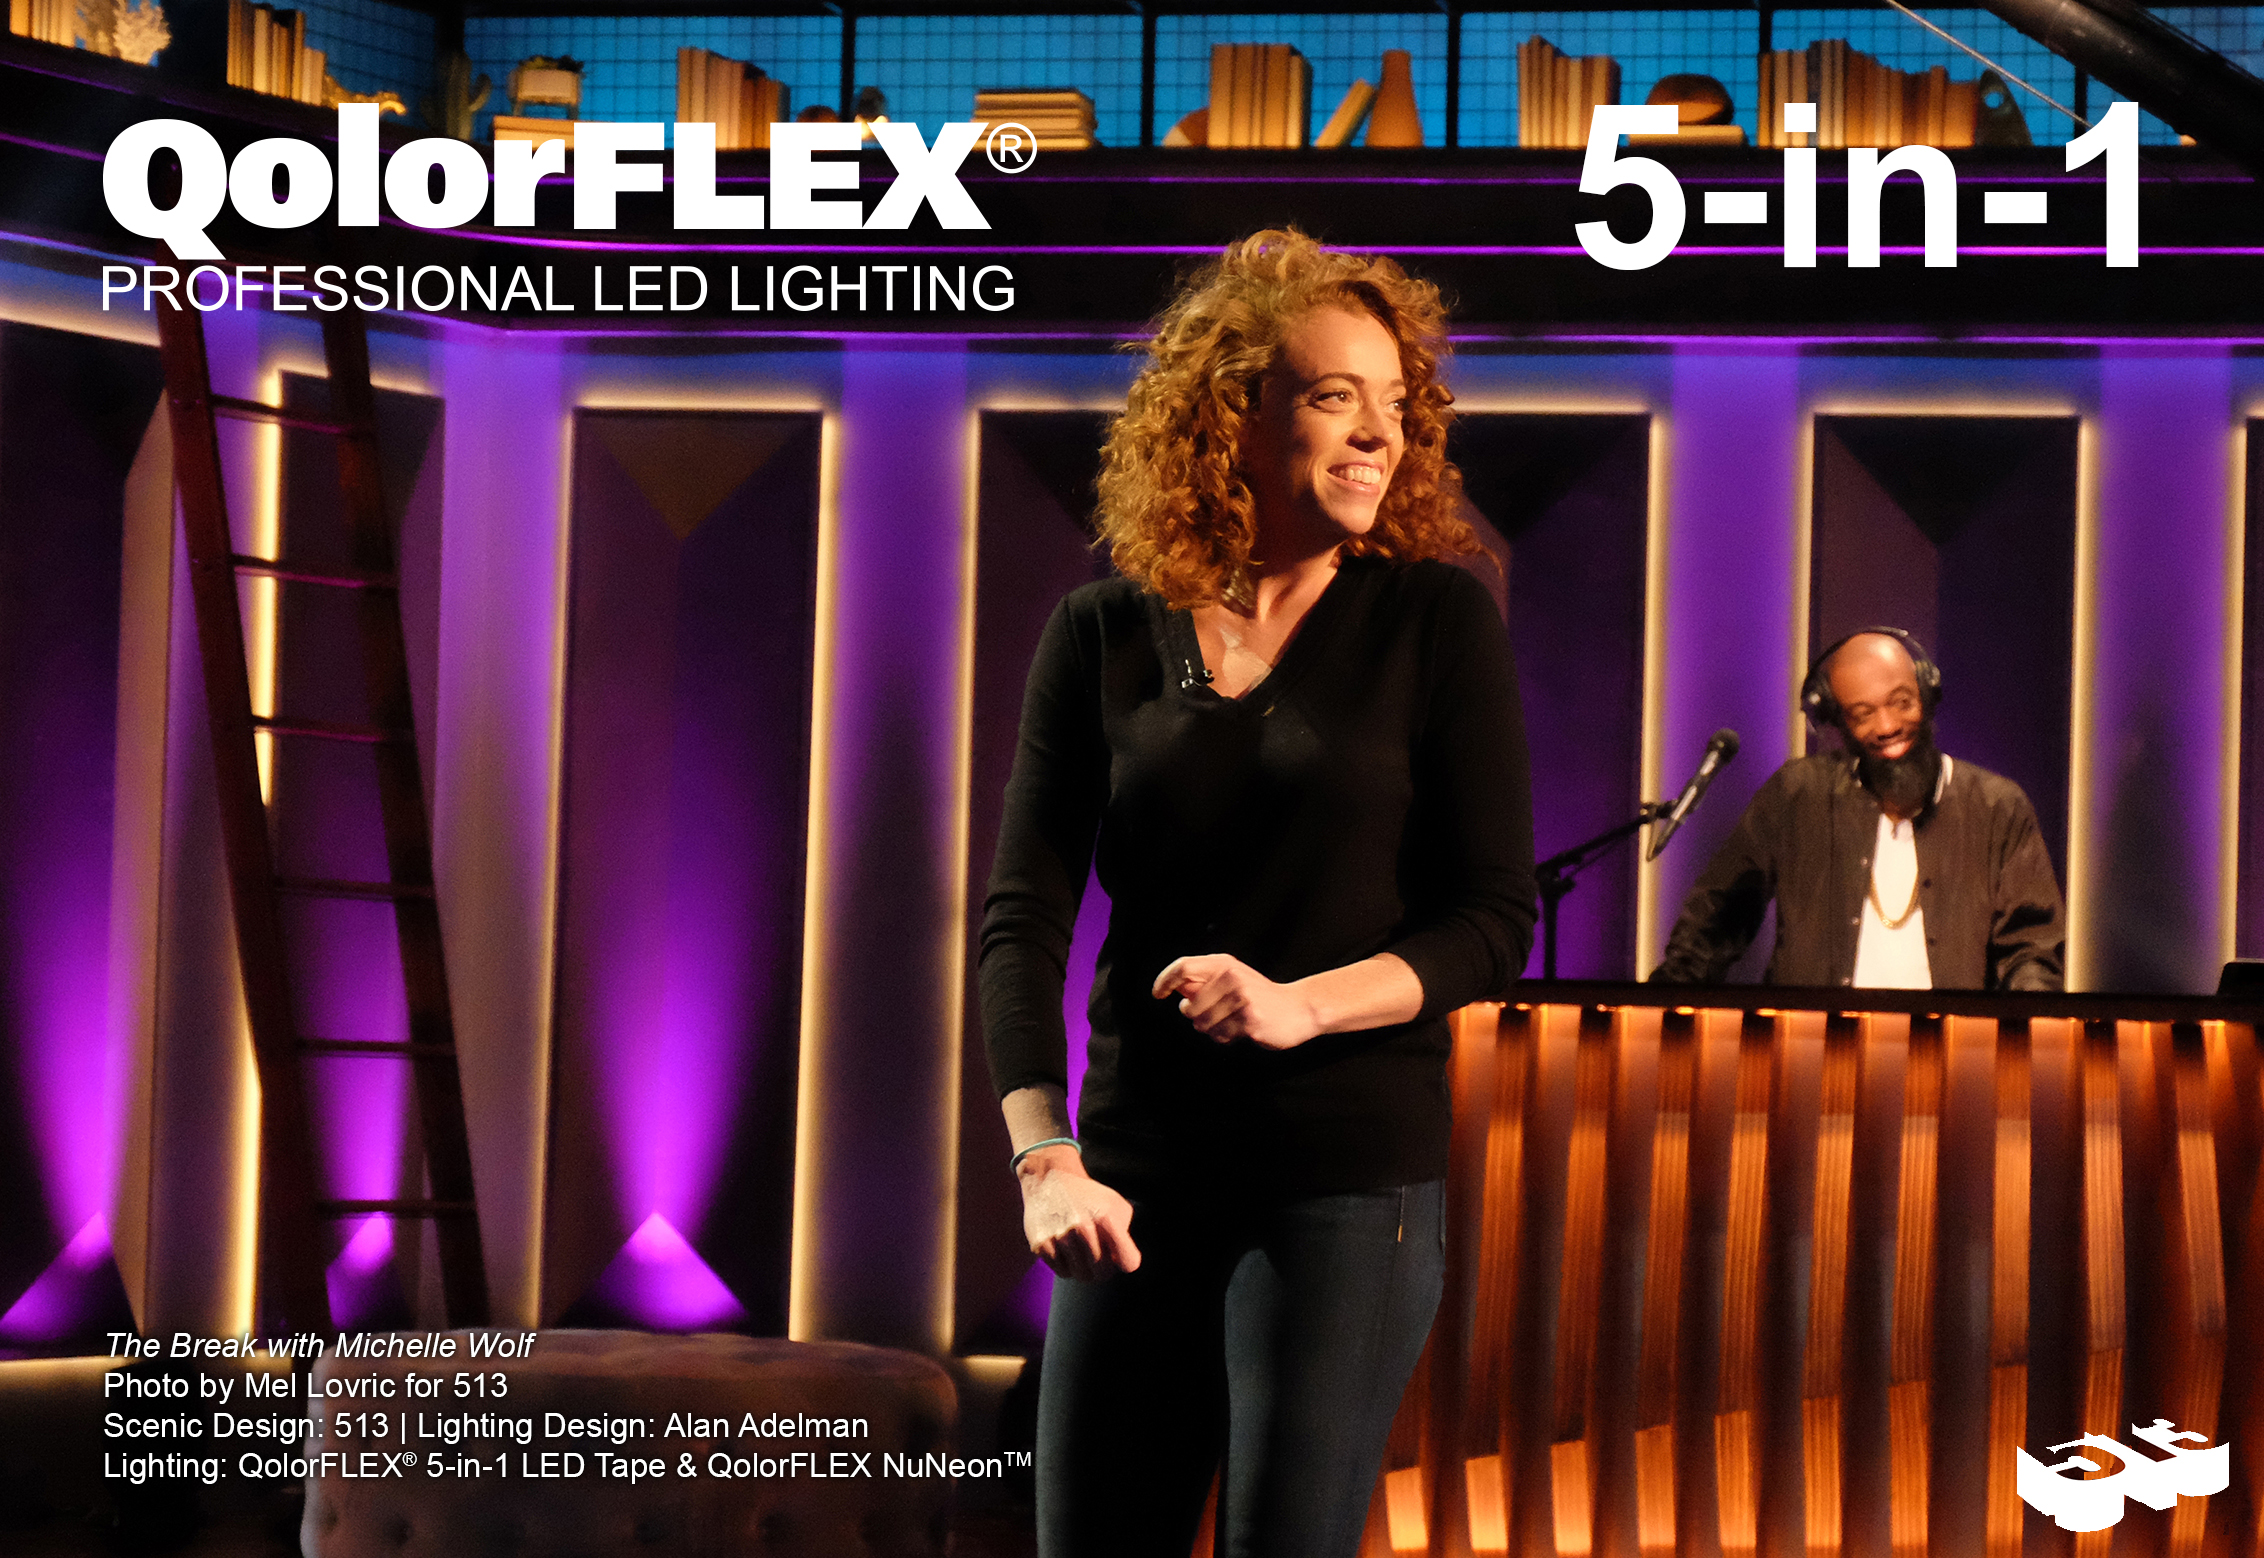 QolorFLEX products on The Break with Michelle Wolf, monologue